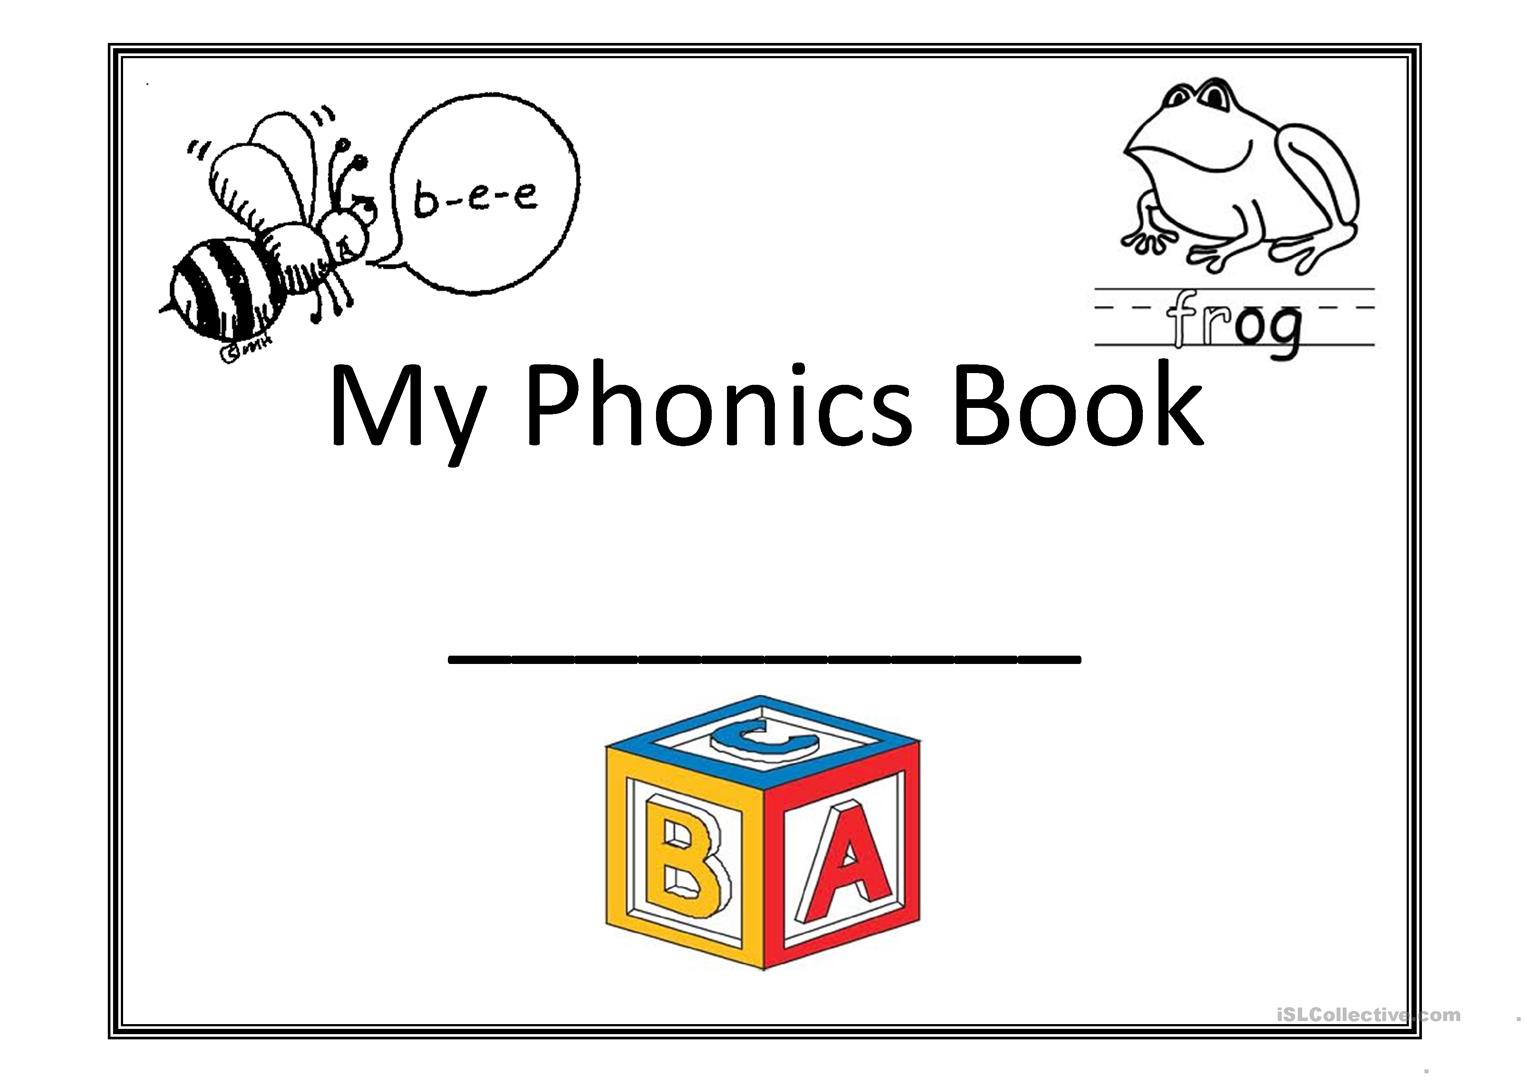 My Phonics Book Worksheet - Free Esl Printable Worksheets Made | Phonics Worksheets For Adults Printable